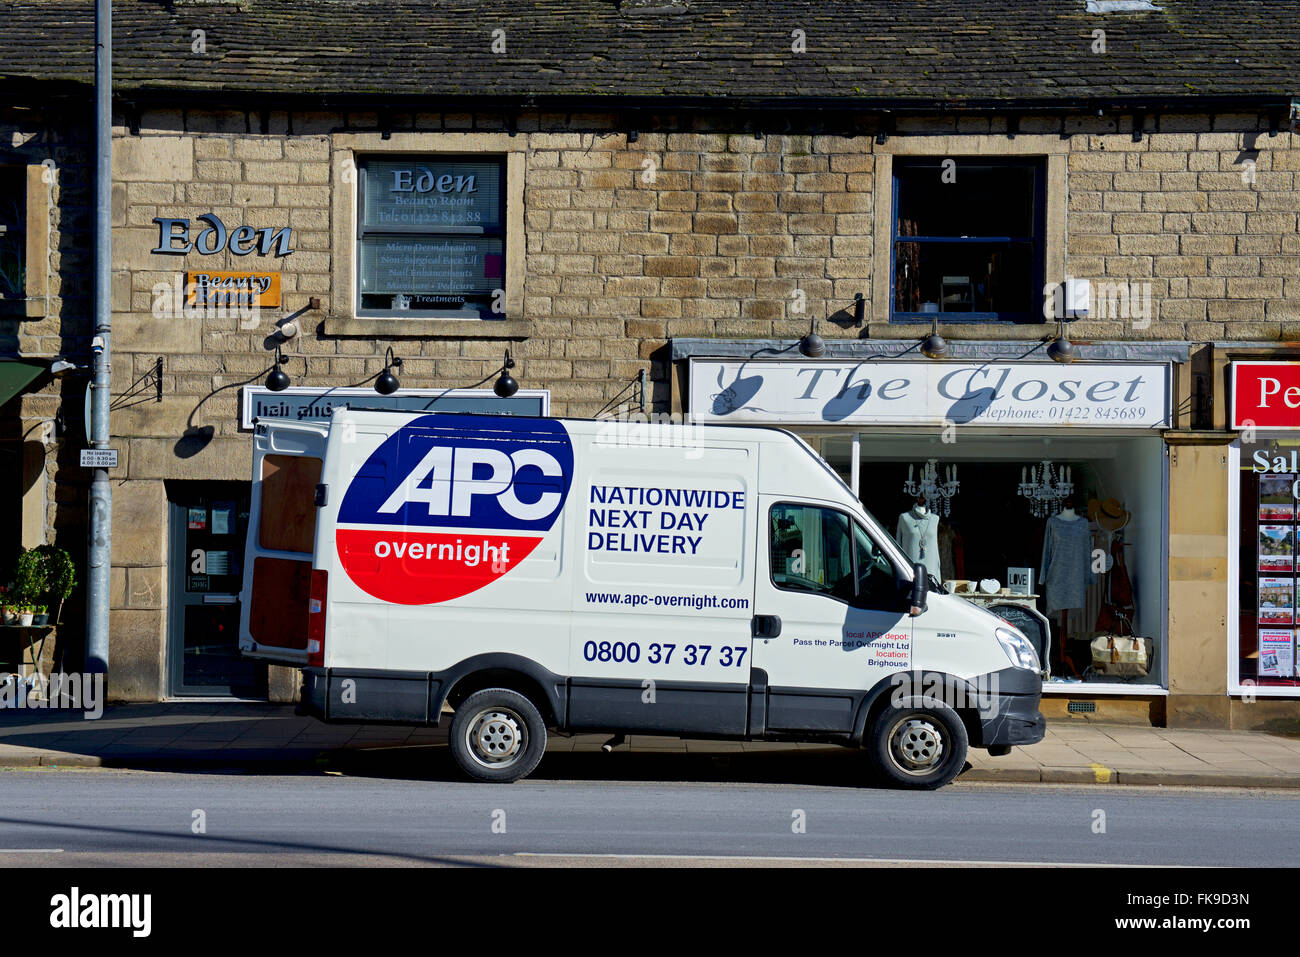 APC Nationwide delvery van parked outside shops, England UK - Stock Image